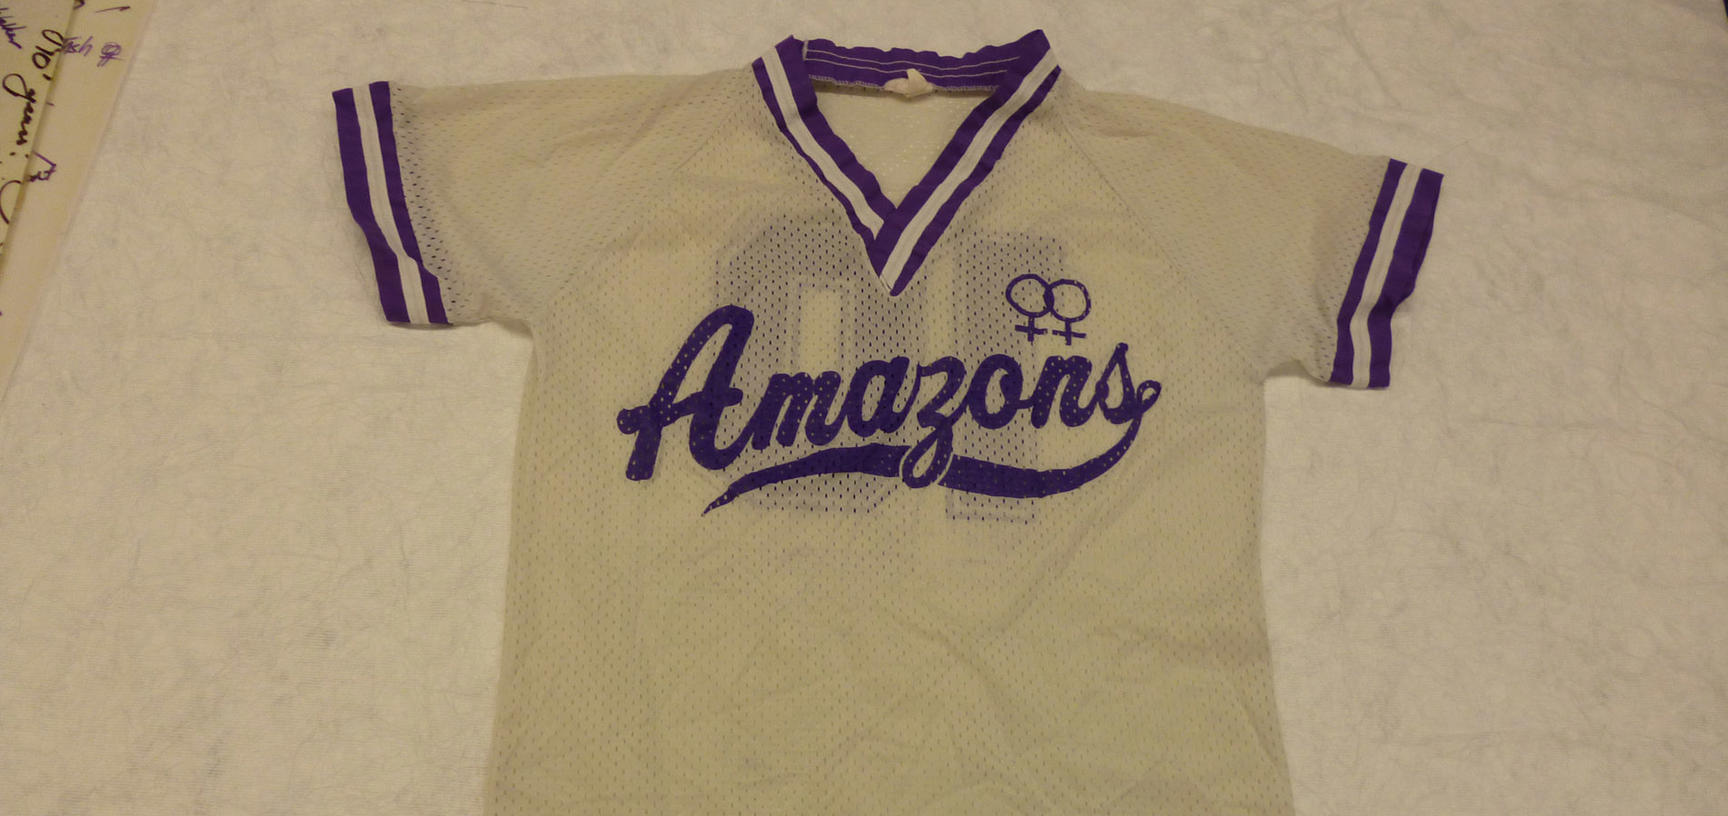 Cream sports shirt with purple Amazons team logo across the front.